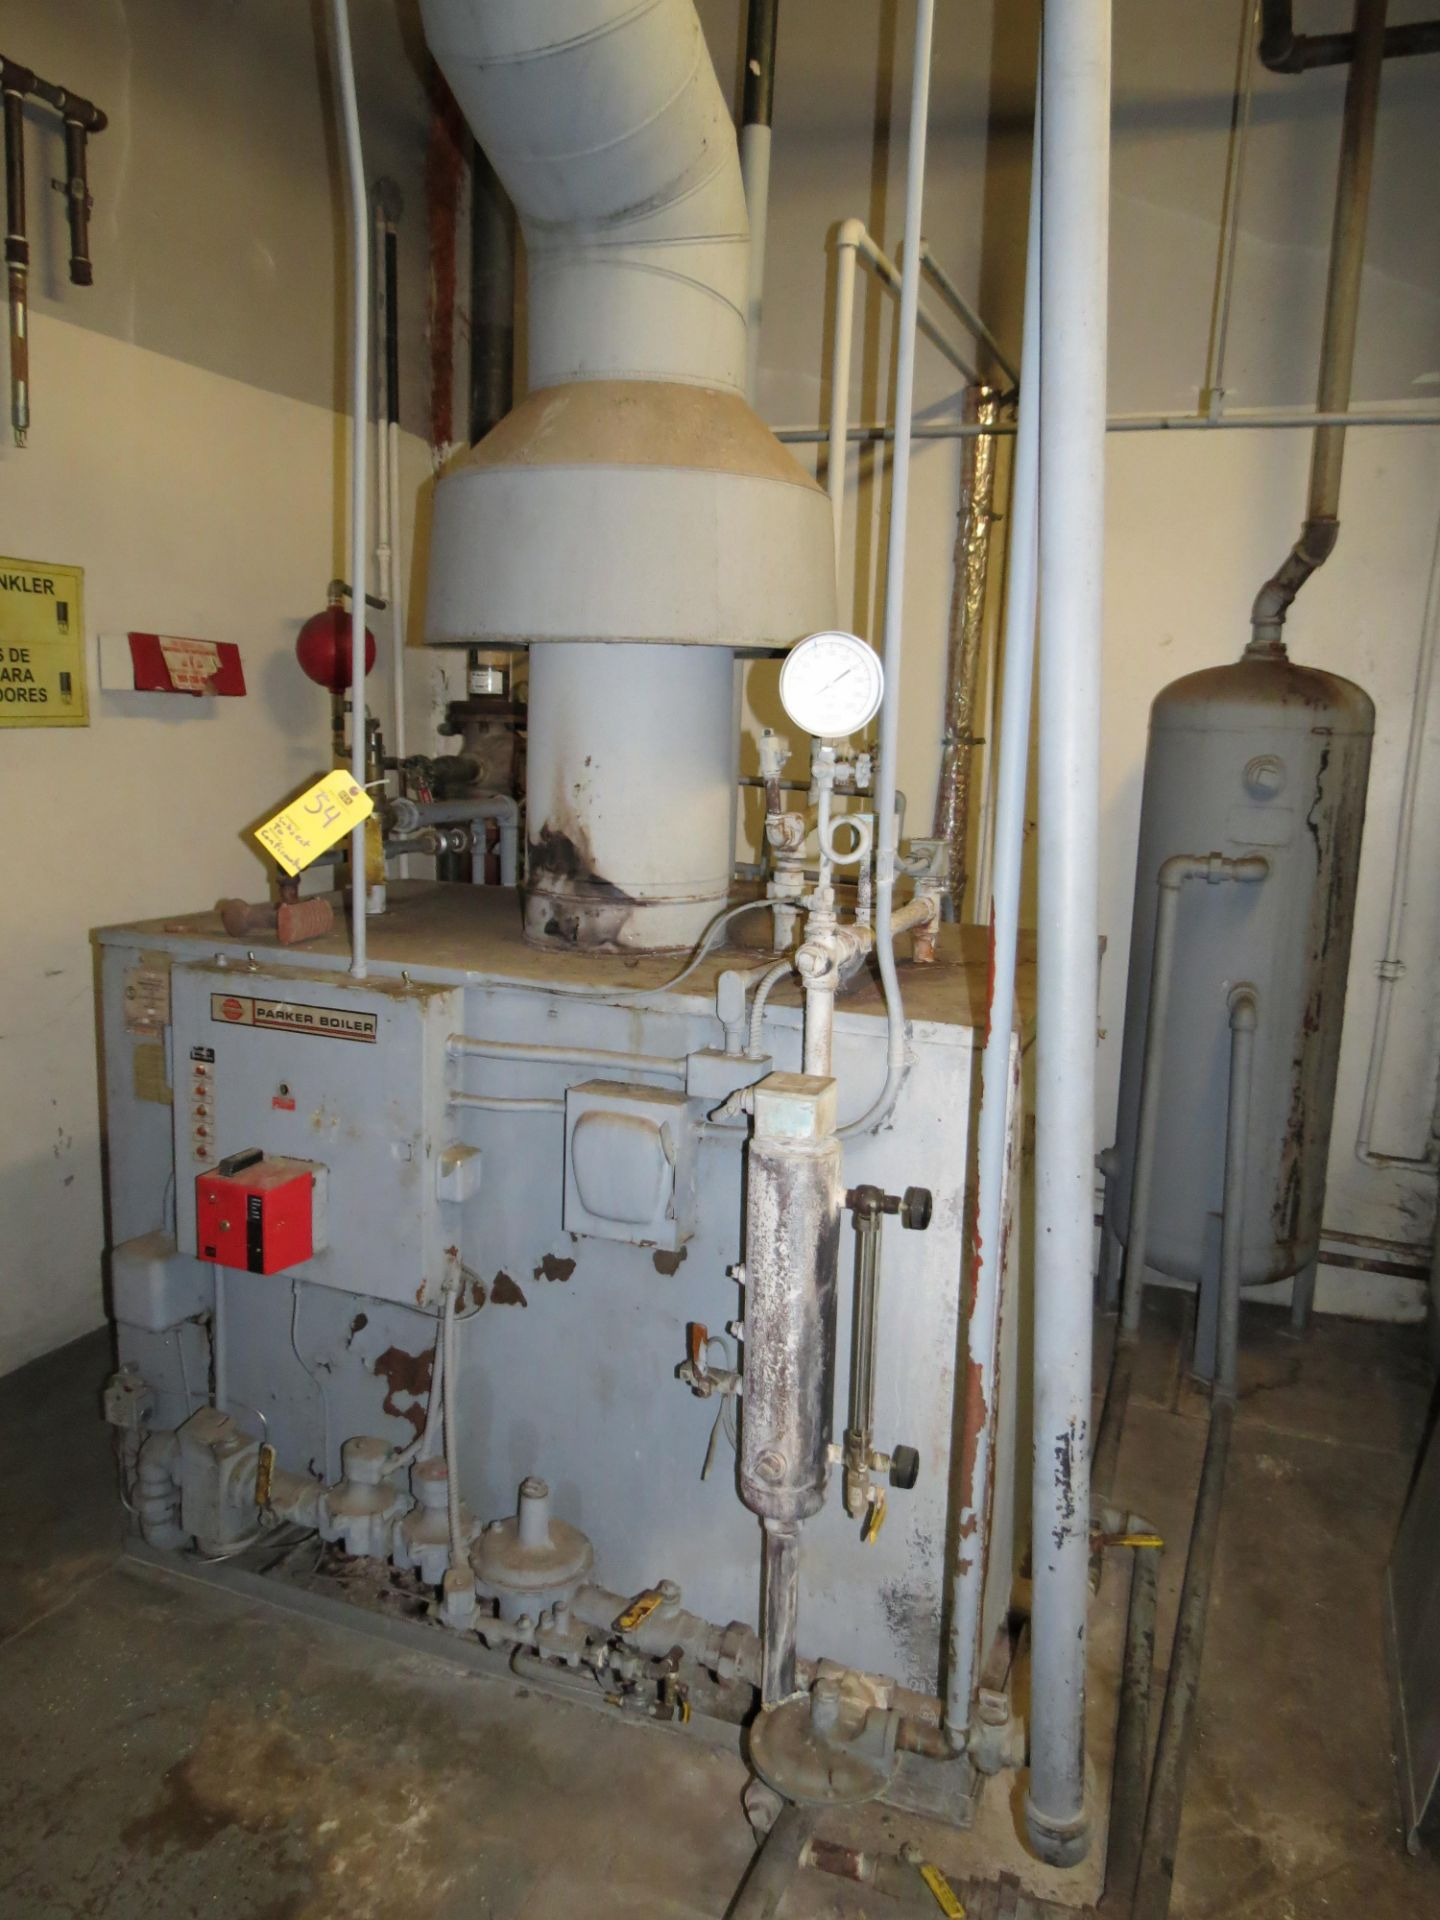 Lot 54 - 1980 25 HP PARKER BOILER SN: 25442 (SUBJECT TO CONFIRMATION)